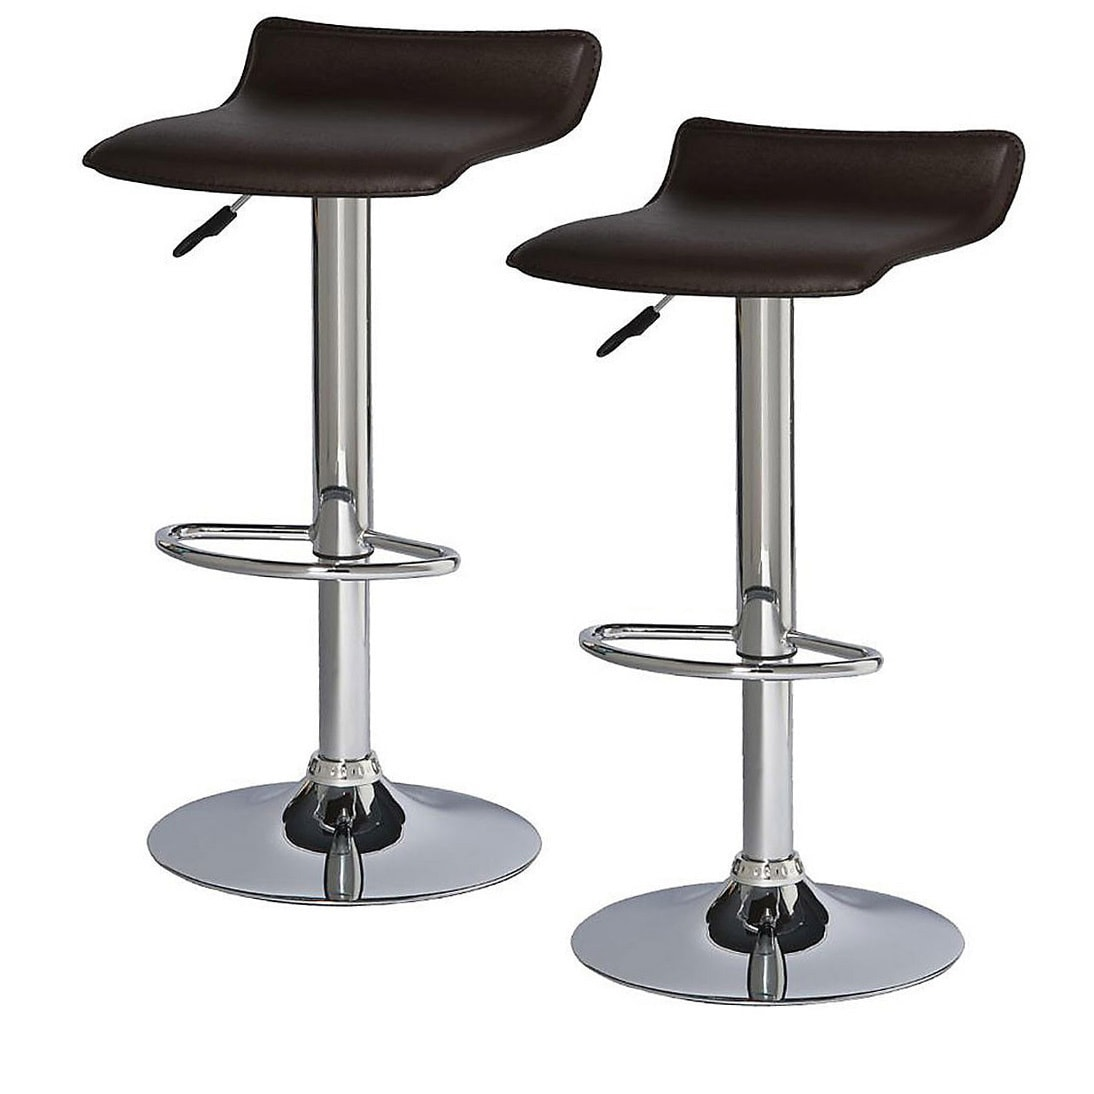 Adjustable Height Faux Leather And Chrome Swivel Stool Set Of 2 Overstock 6246139